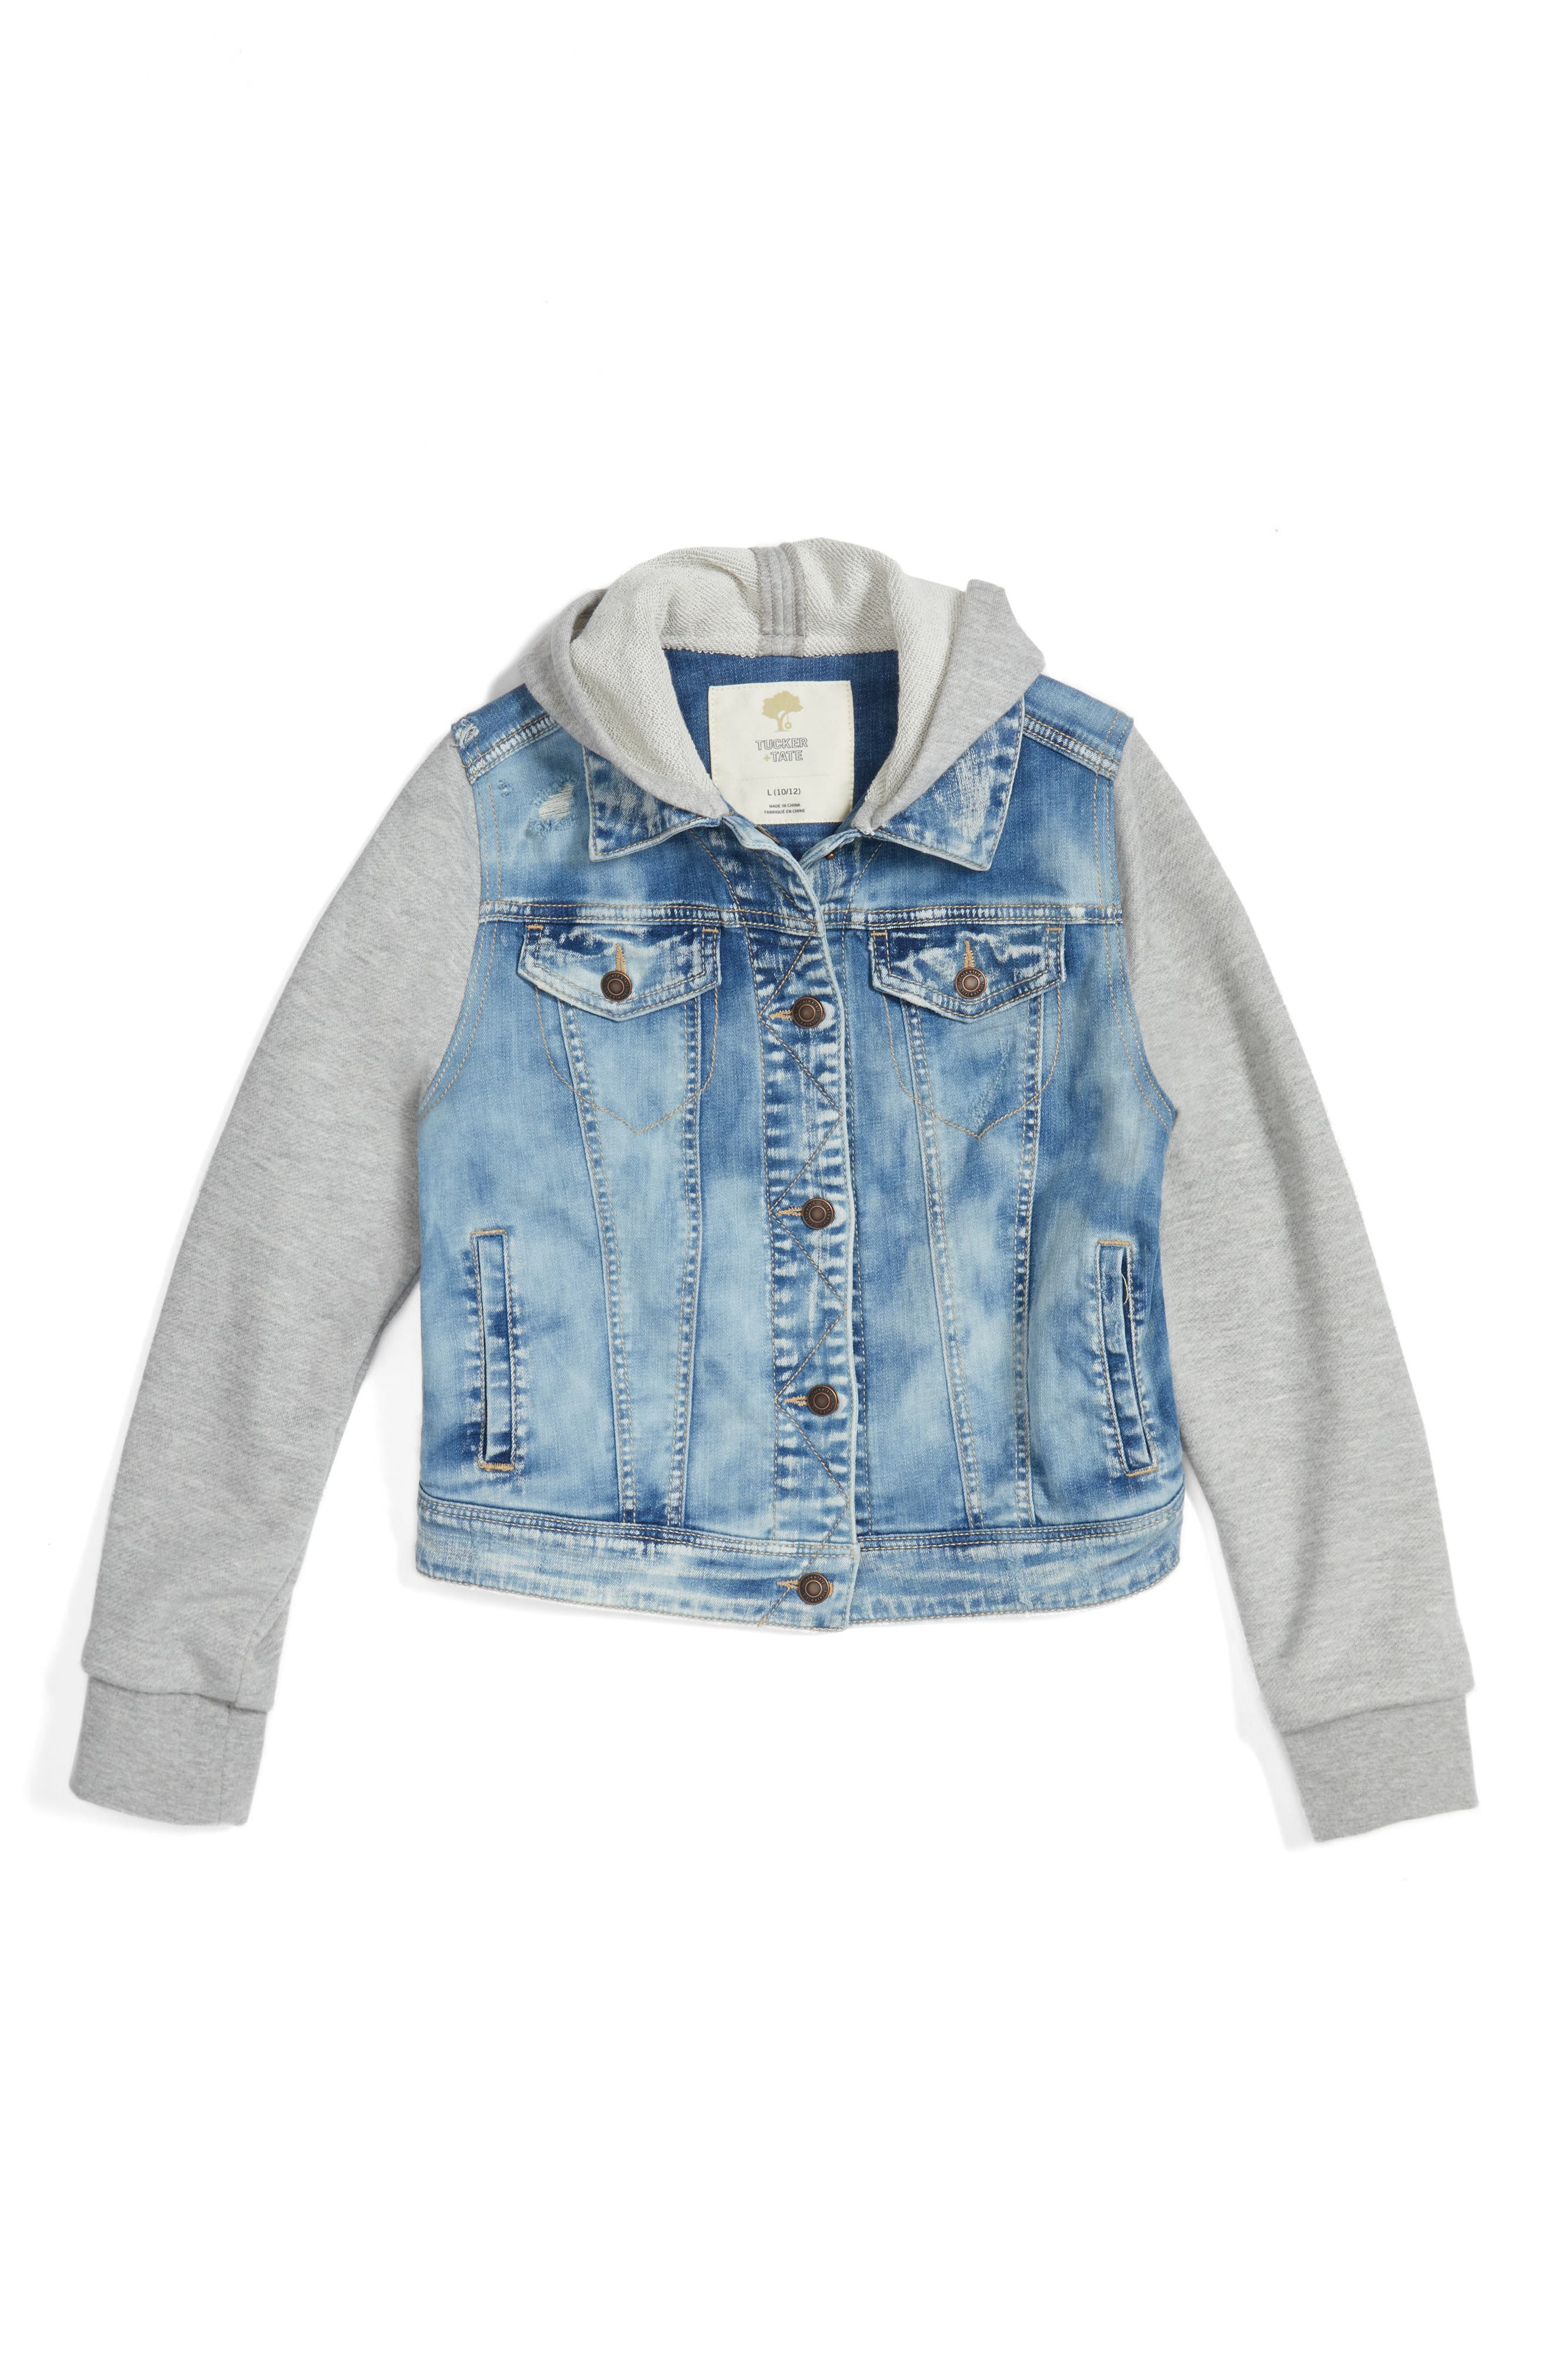 Alternate Image 1 Selected - Tucker + Tate Mixed Media Jacket (Big Girls)